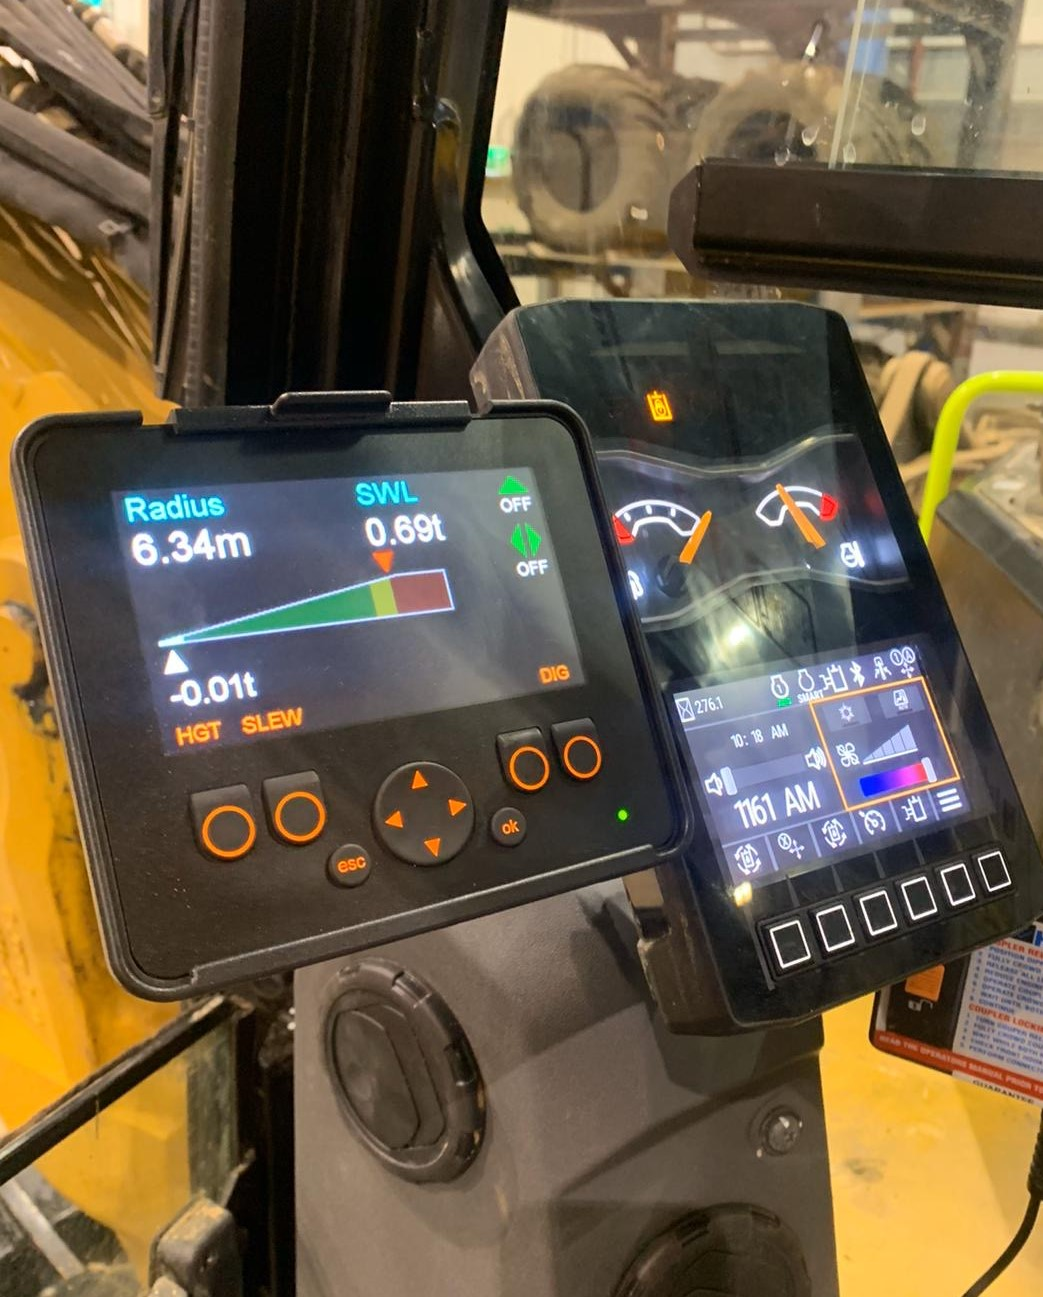 Xwatch Develops Technological Safety Solutions for Plant